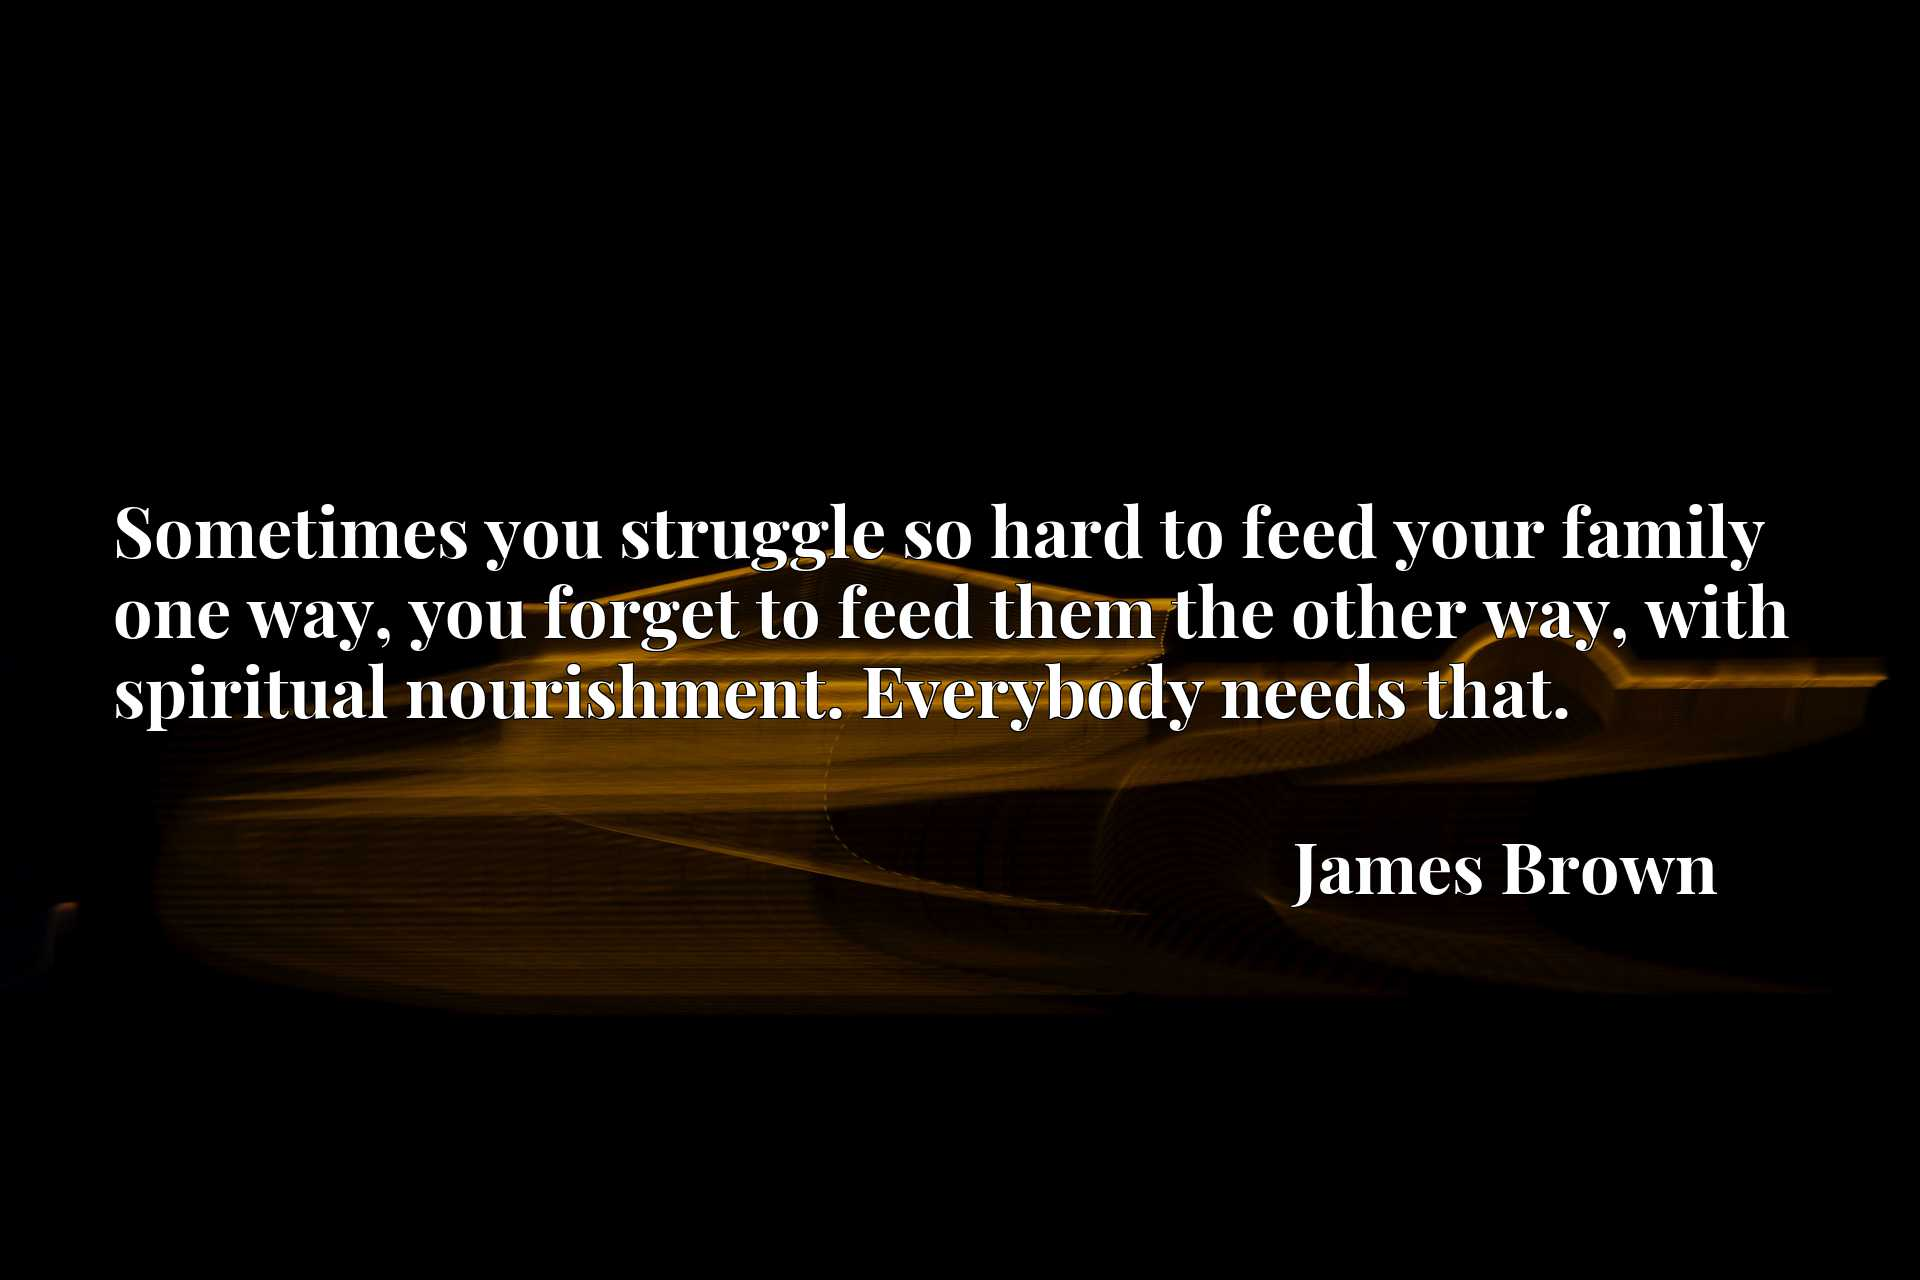 Sometimes you struggle so hard to feed your family one way, you forget to feed them the other way, with spiritual nourishment. Everybody needs that.